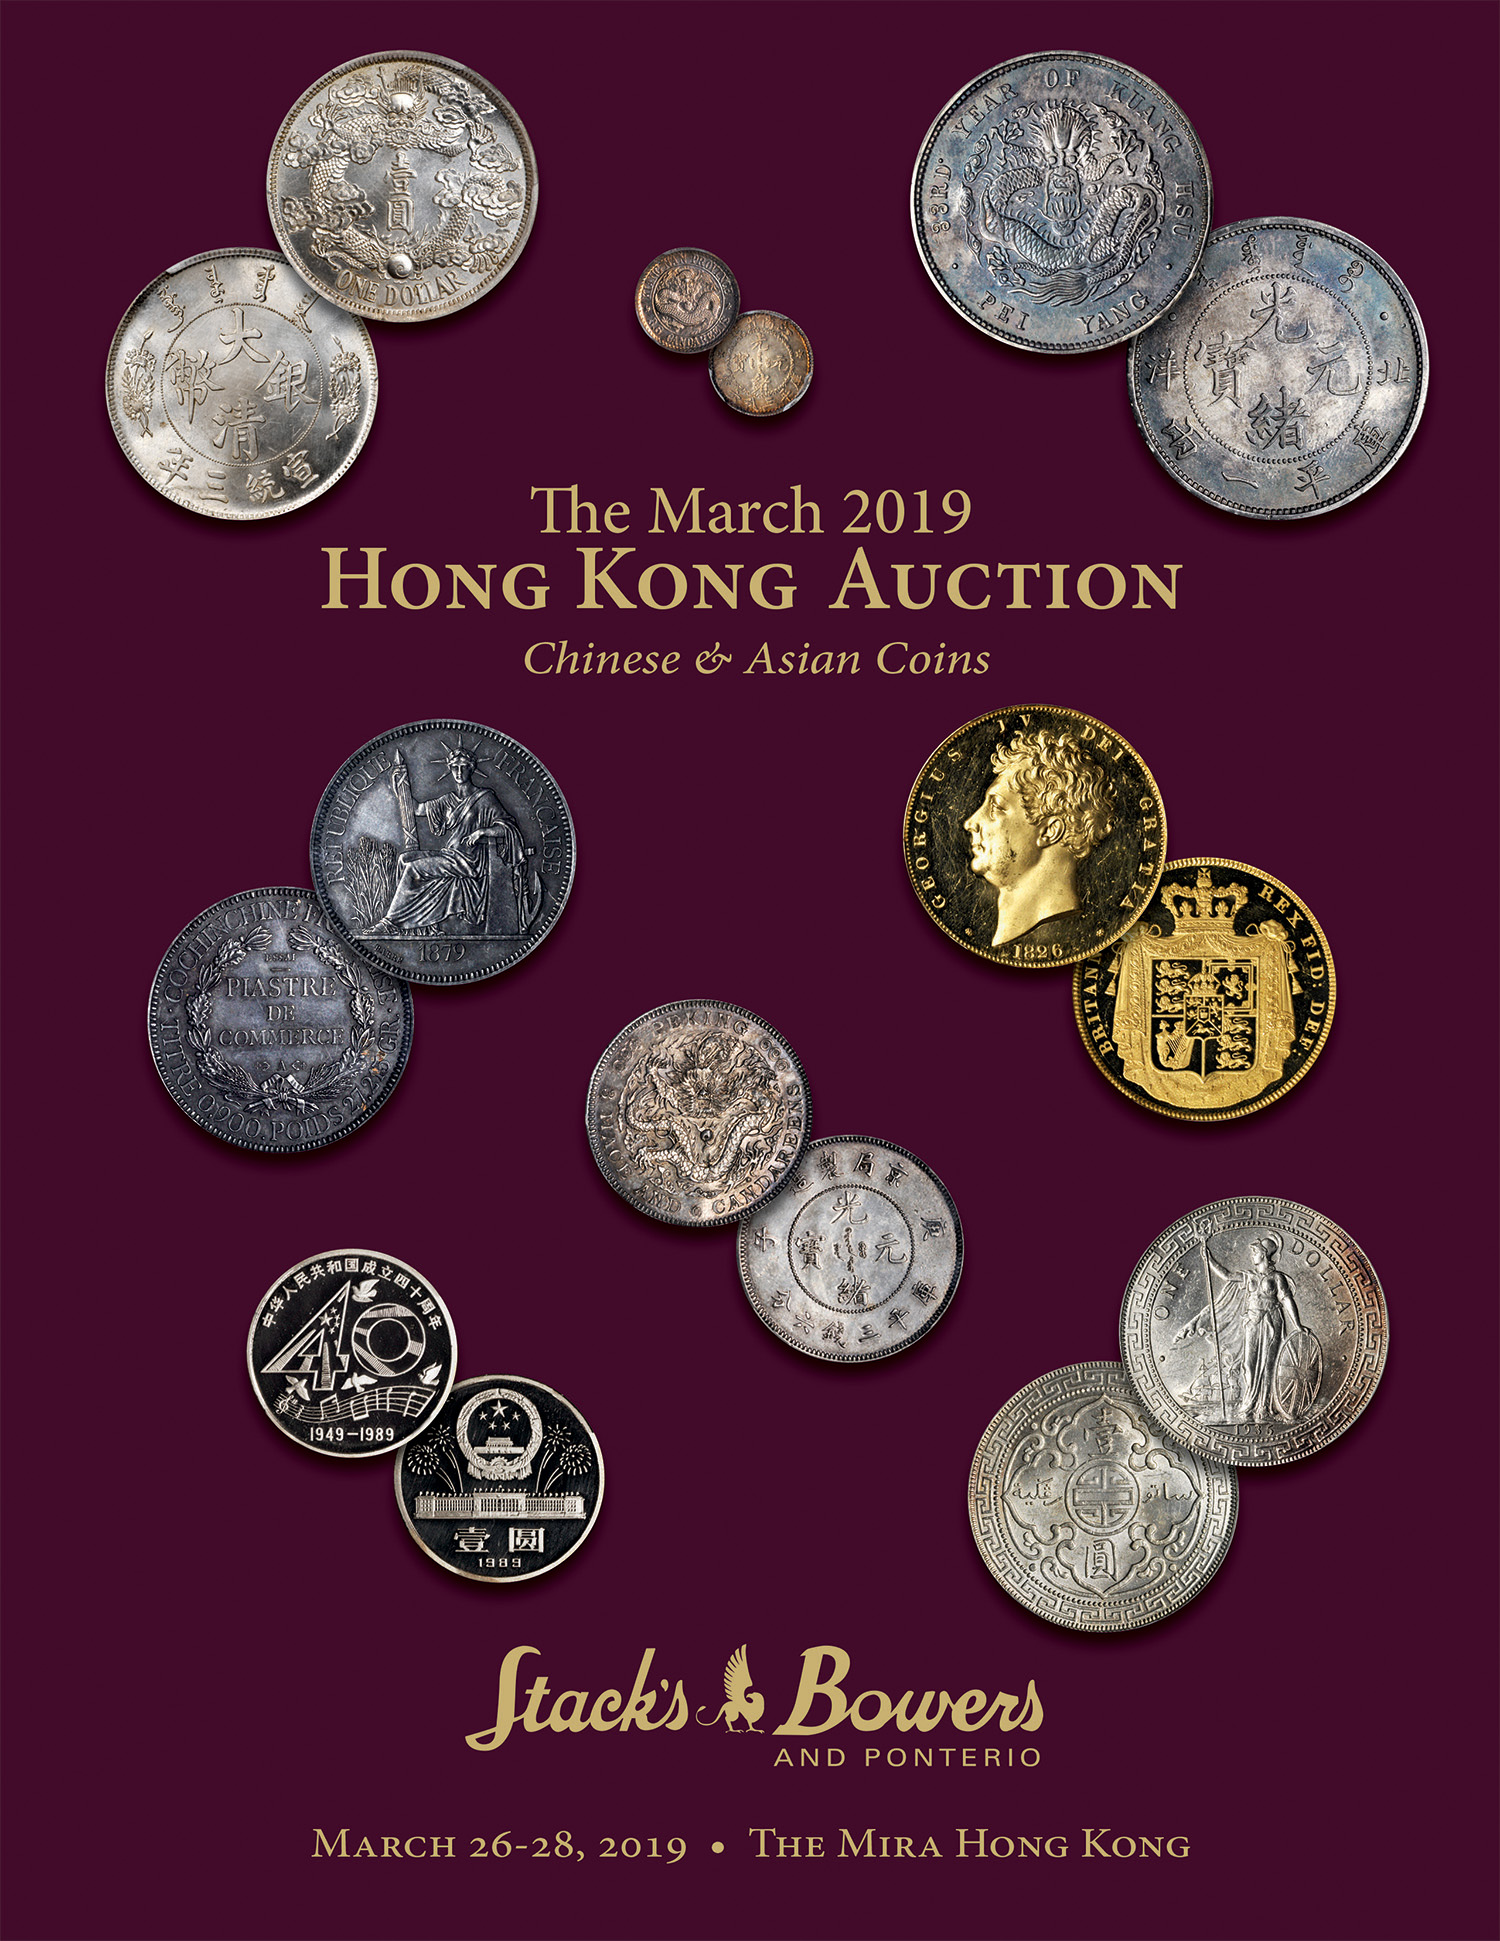 The March 2019 Hong Kong Auction, Chinese & Asian Coins